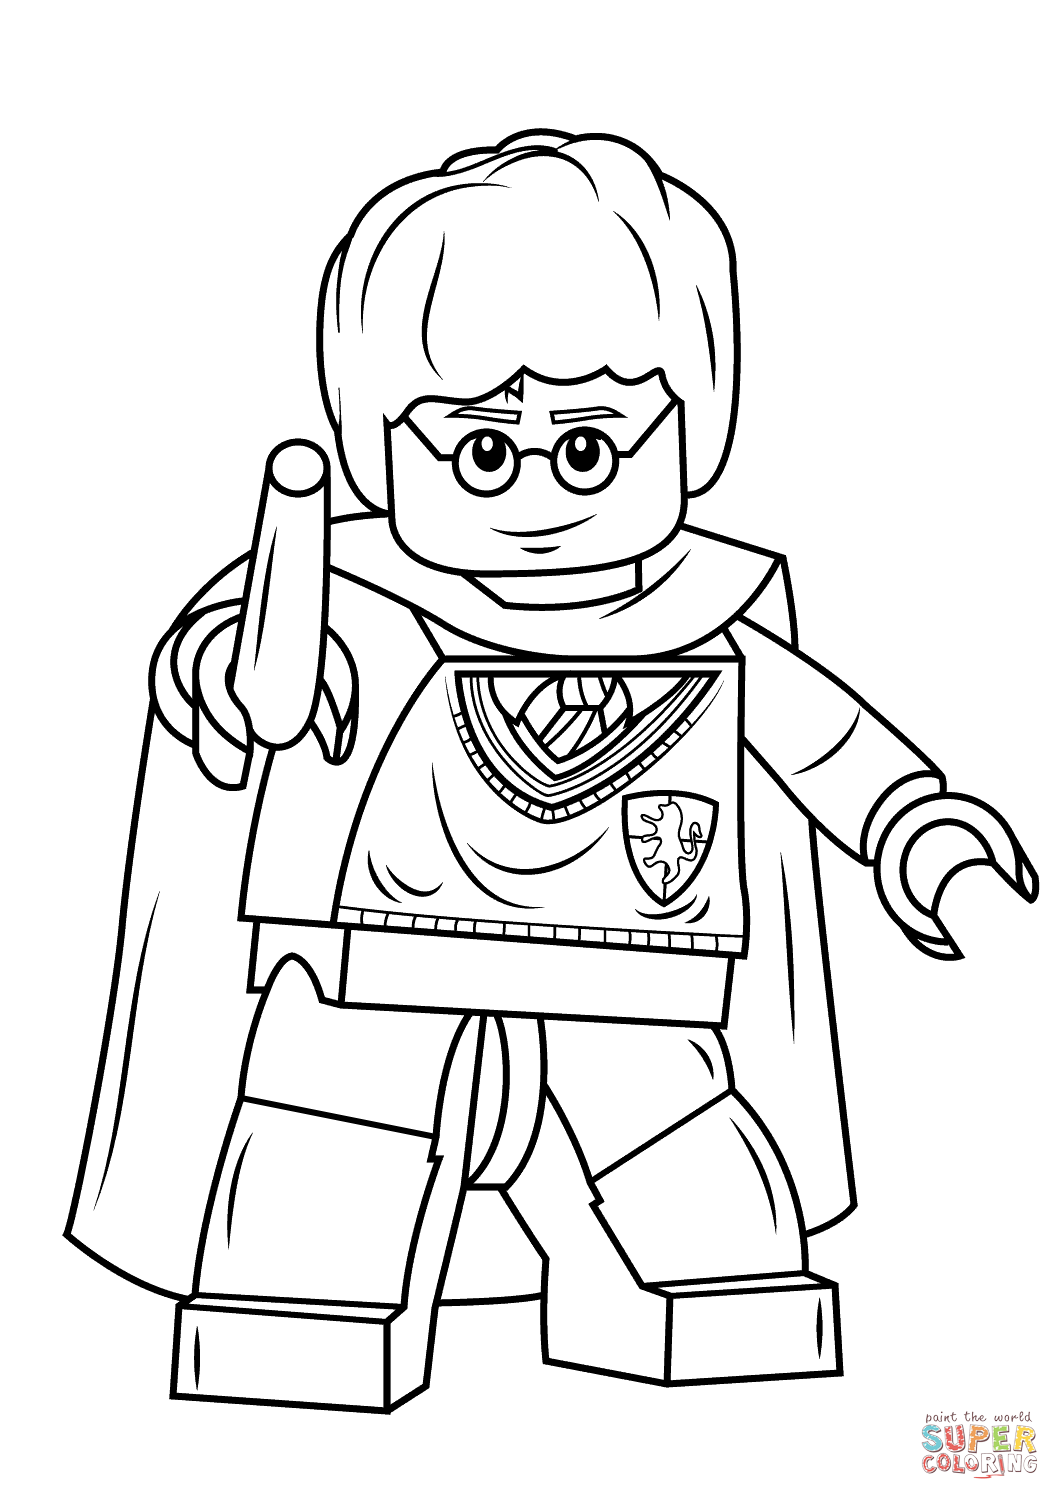 Coloring pages for school age kids - Lego Harry Potter With Wand Coloring Page Png 1 060 1 500 Pixels School Age January Pinterest